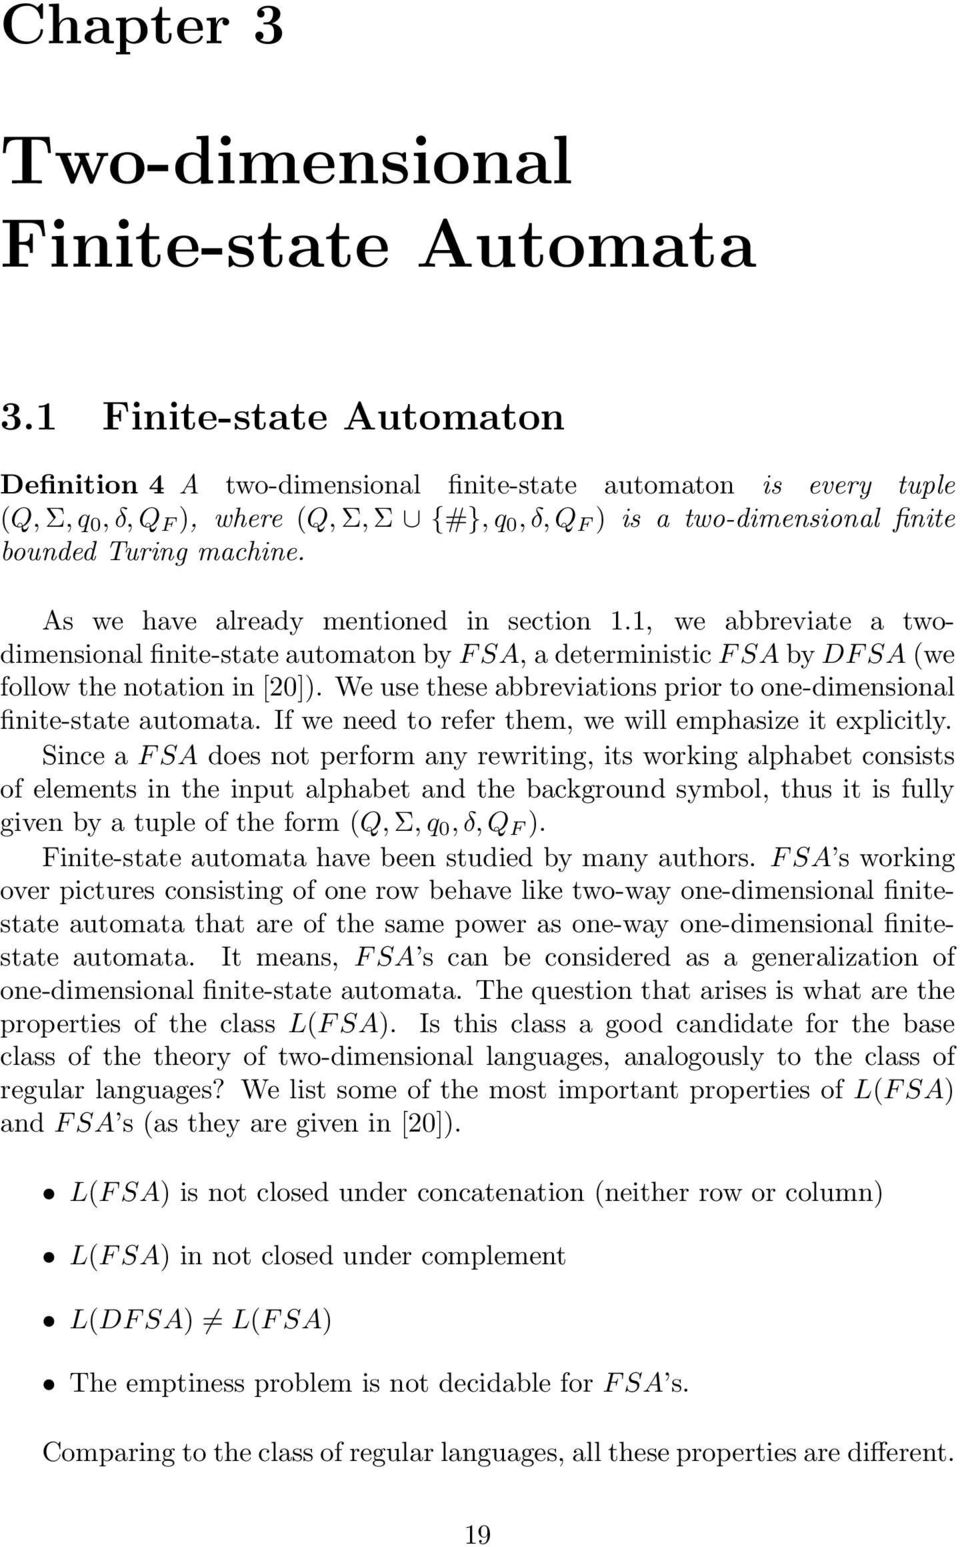 machine. As we have already mentioned in section 1.1, we abbreviate a twodimensional finite-state automaton by F SA, a deterministic F SA by DF SA (we follow the notation in [20]).